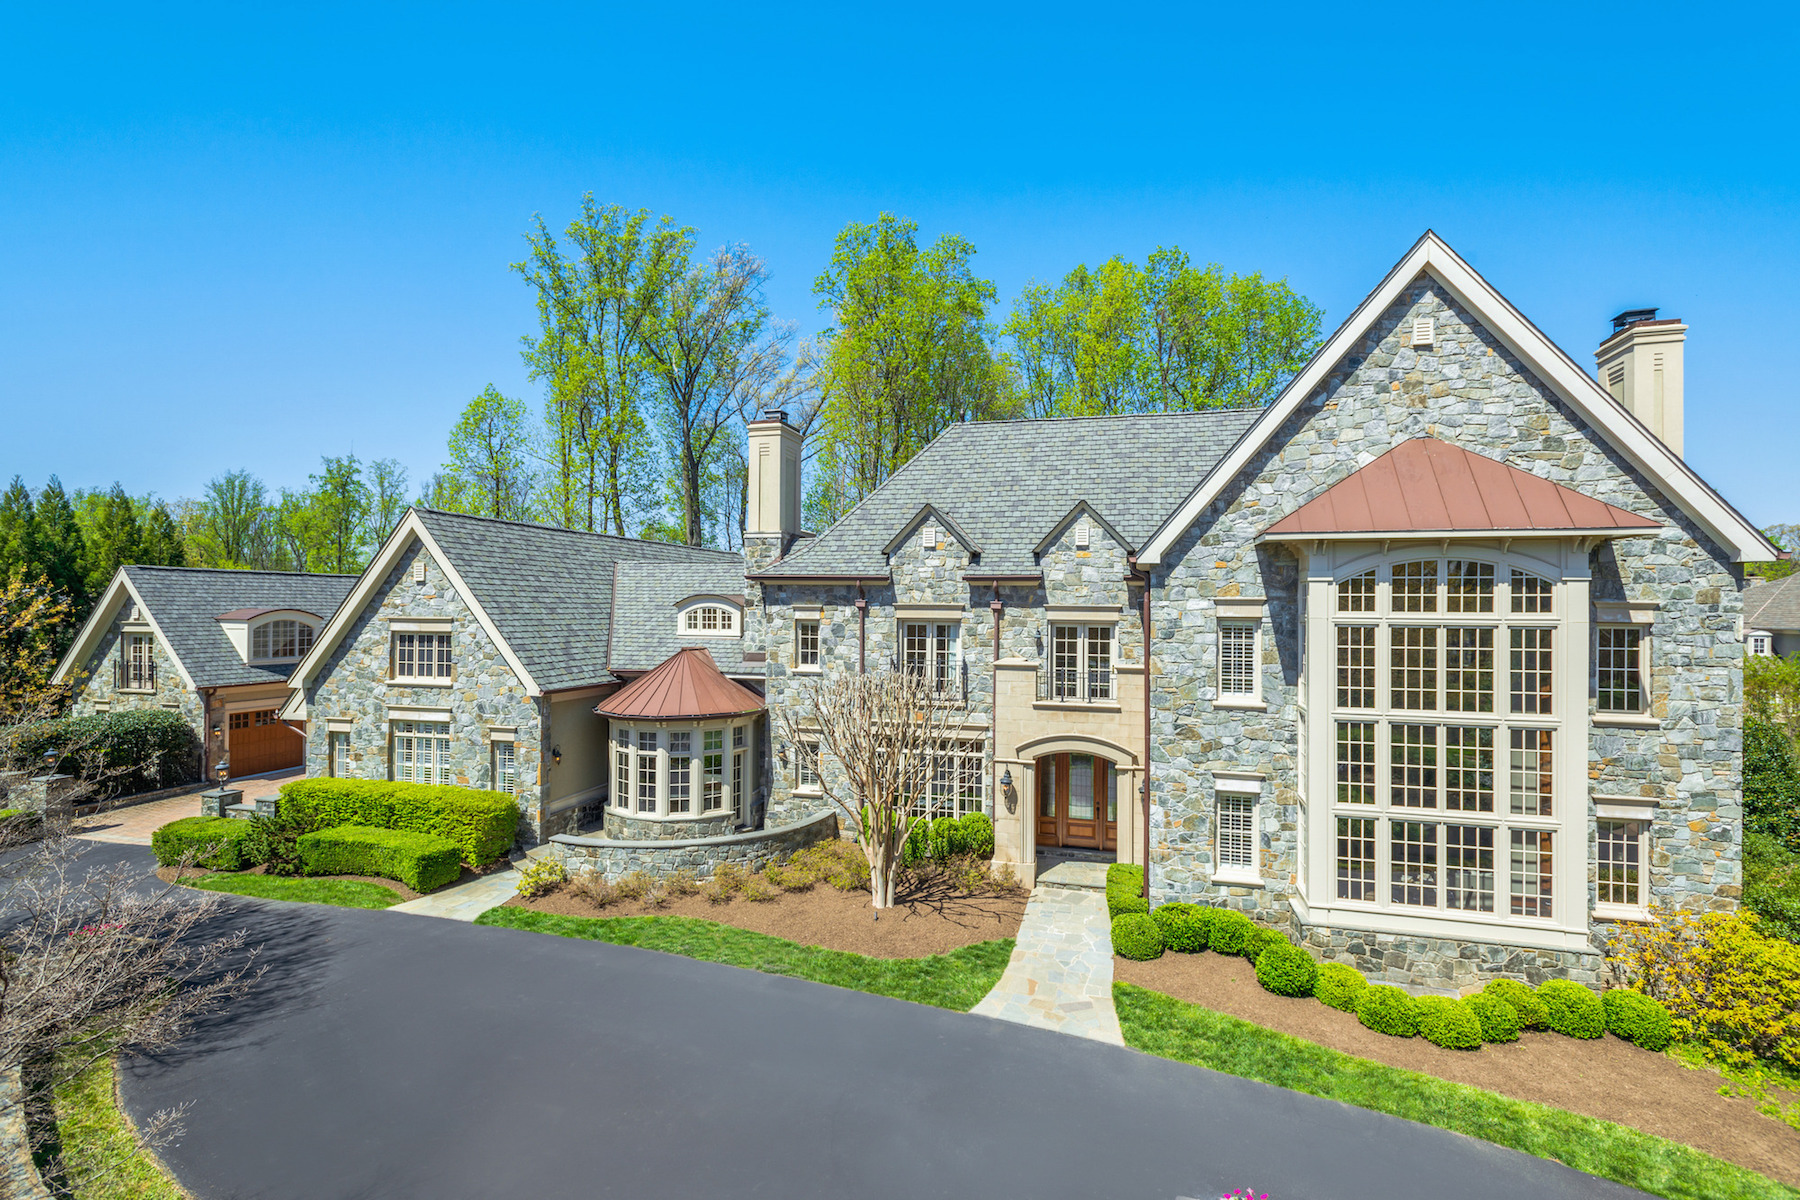 Casa Unifamiliar por un Venta en Masterpiece in The Reserve 1017 Founders Ridge Ln McLean, Virginia 22102 Estados Unidos